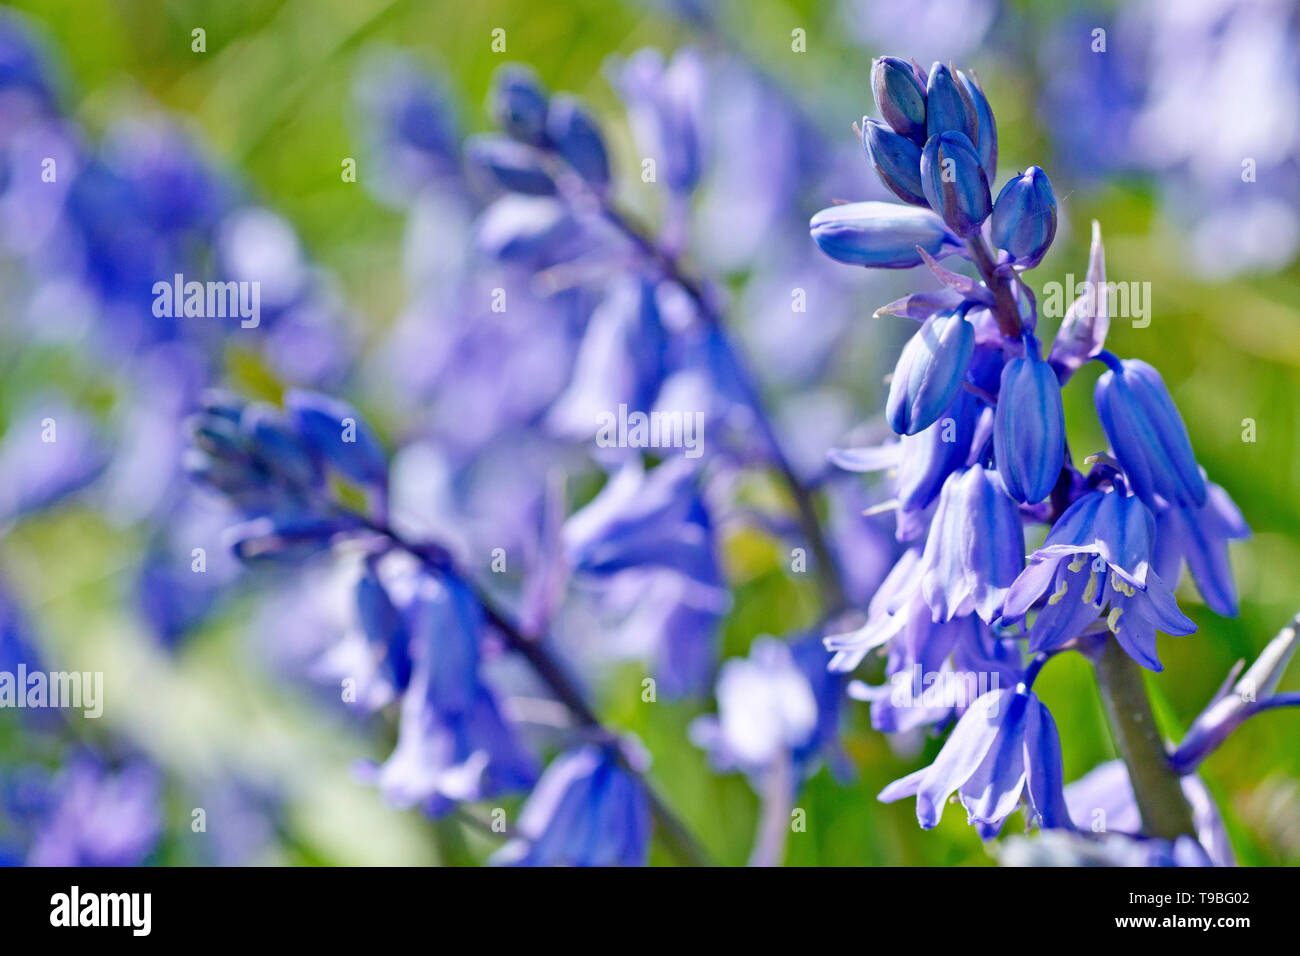 Bluebell (hyacinthoides non-scripta, also endymion non-scriptus), close up of a flower stalk growing amongst others. - Stock Image